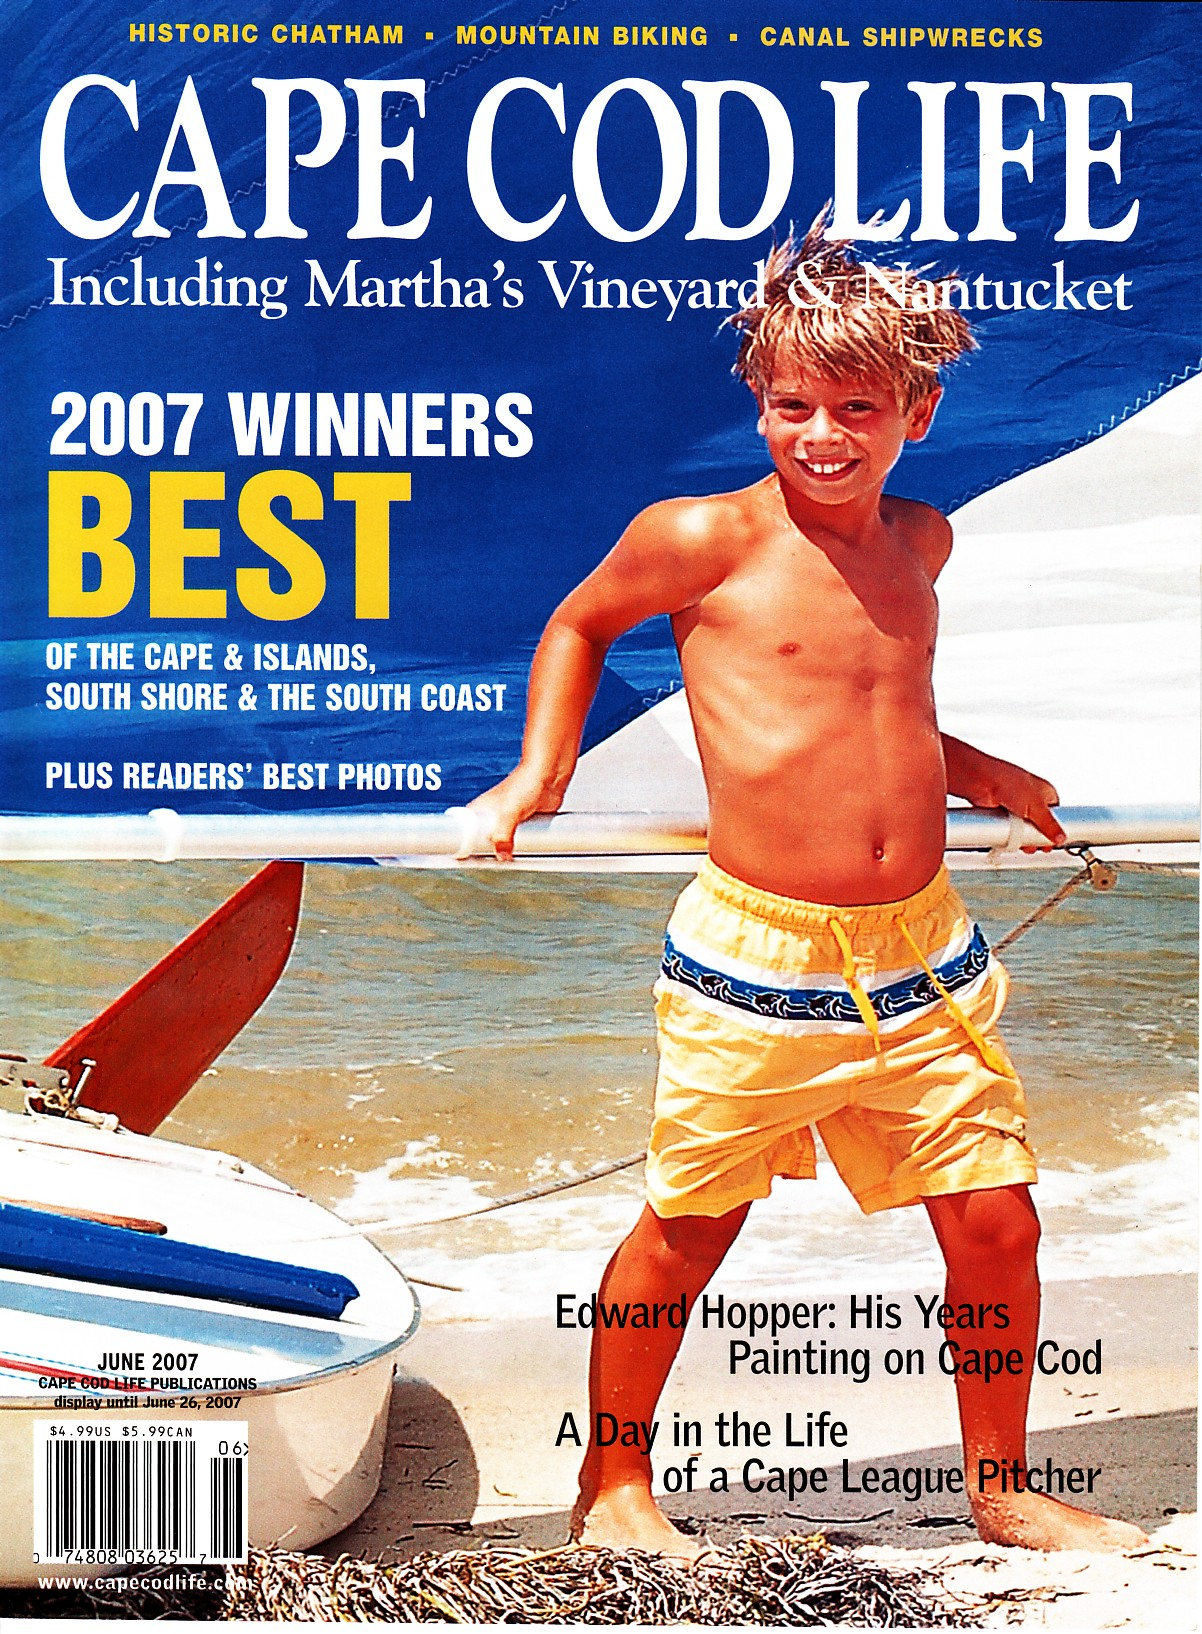 cape cod life 2007 best of cover